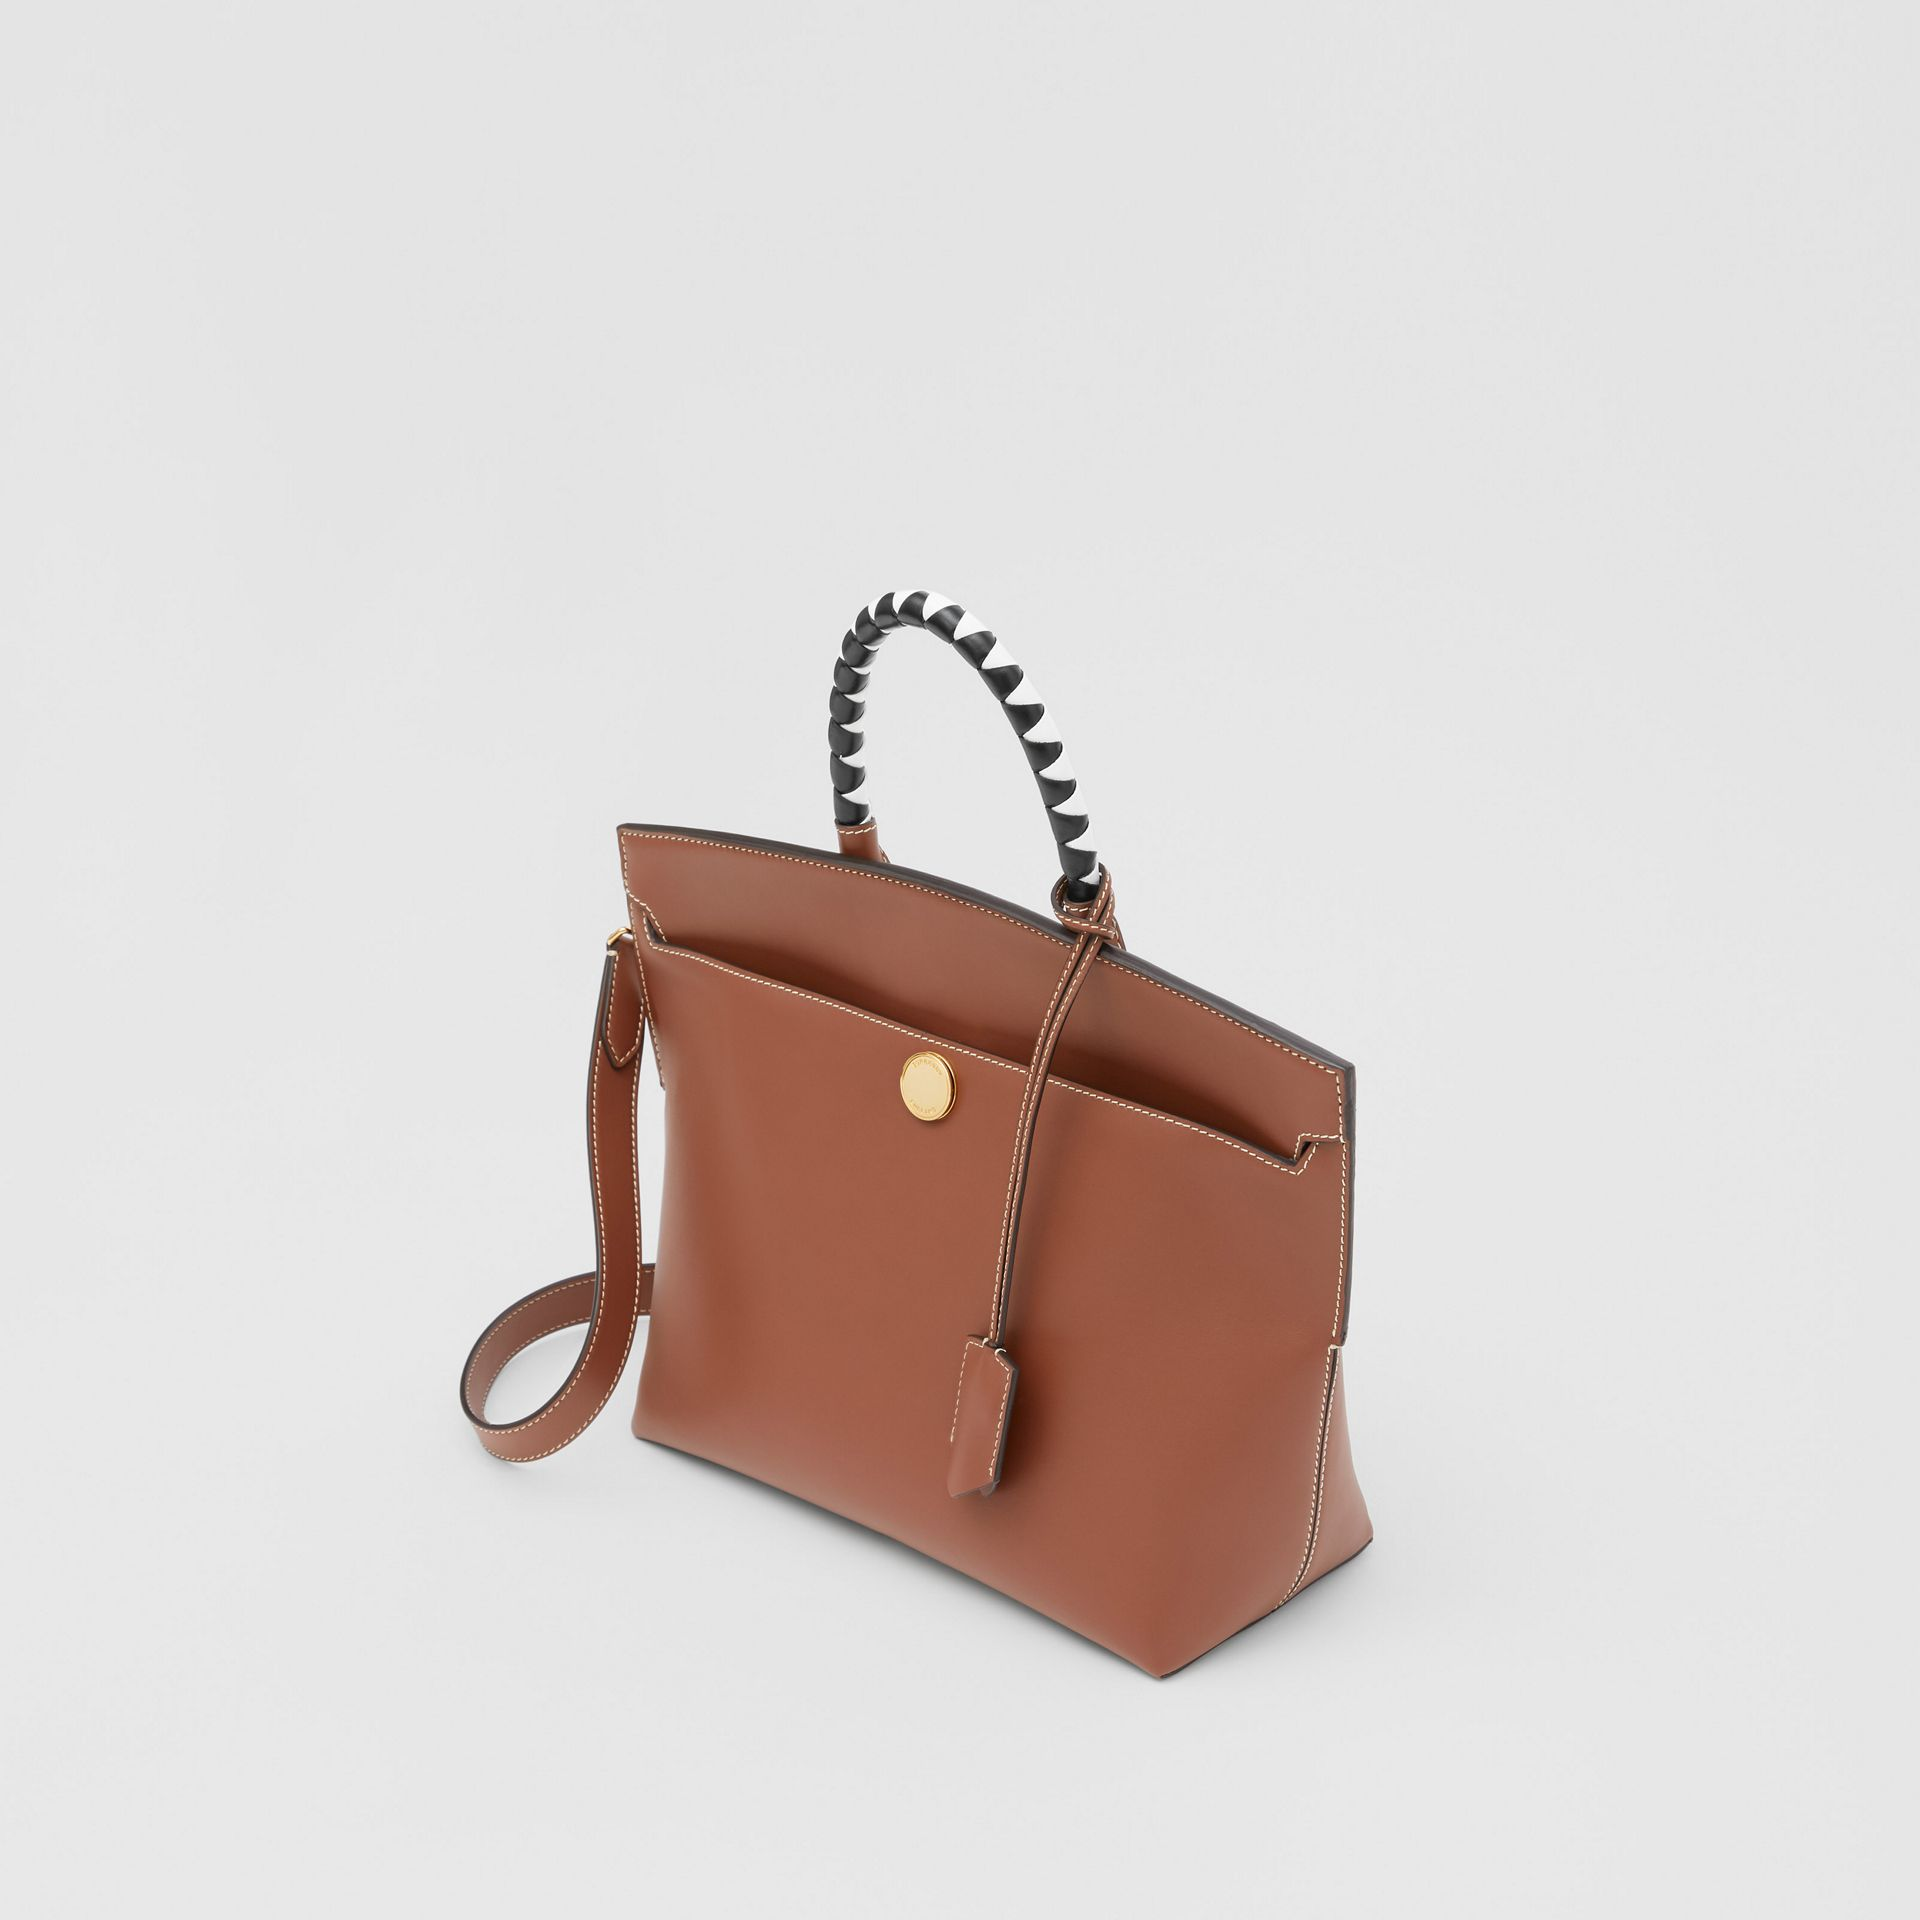 Small Leather Society Top Handle Bag in Tan - Women | Burberry - gallery image 3